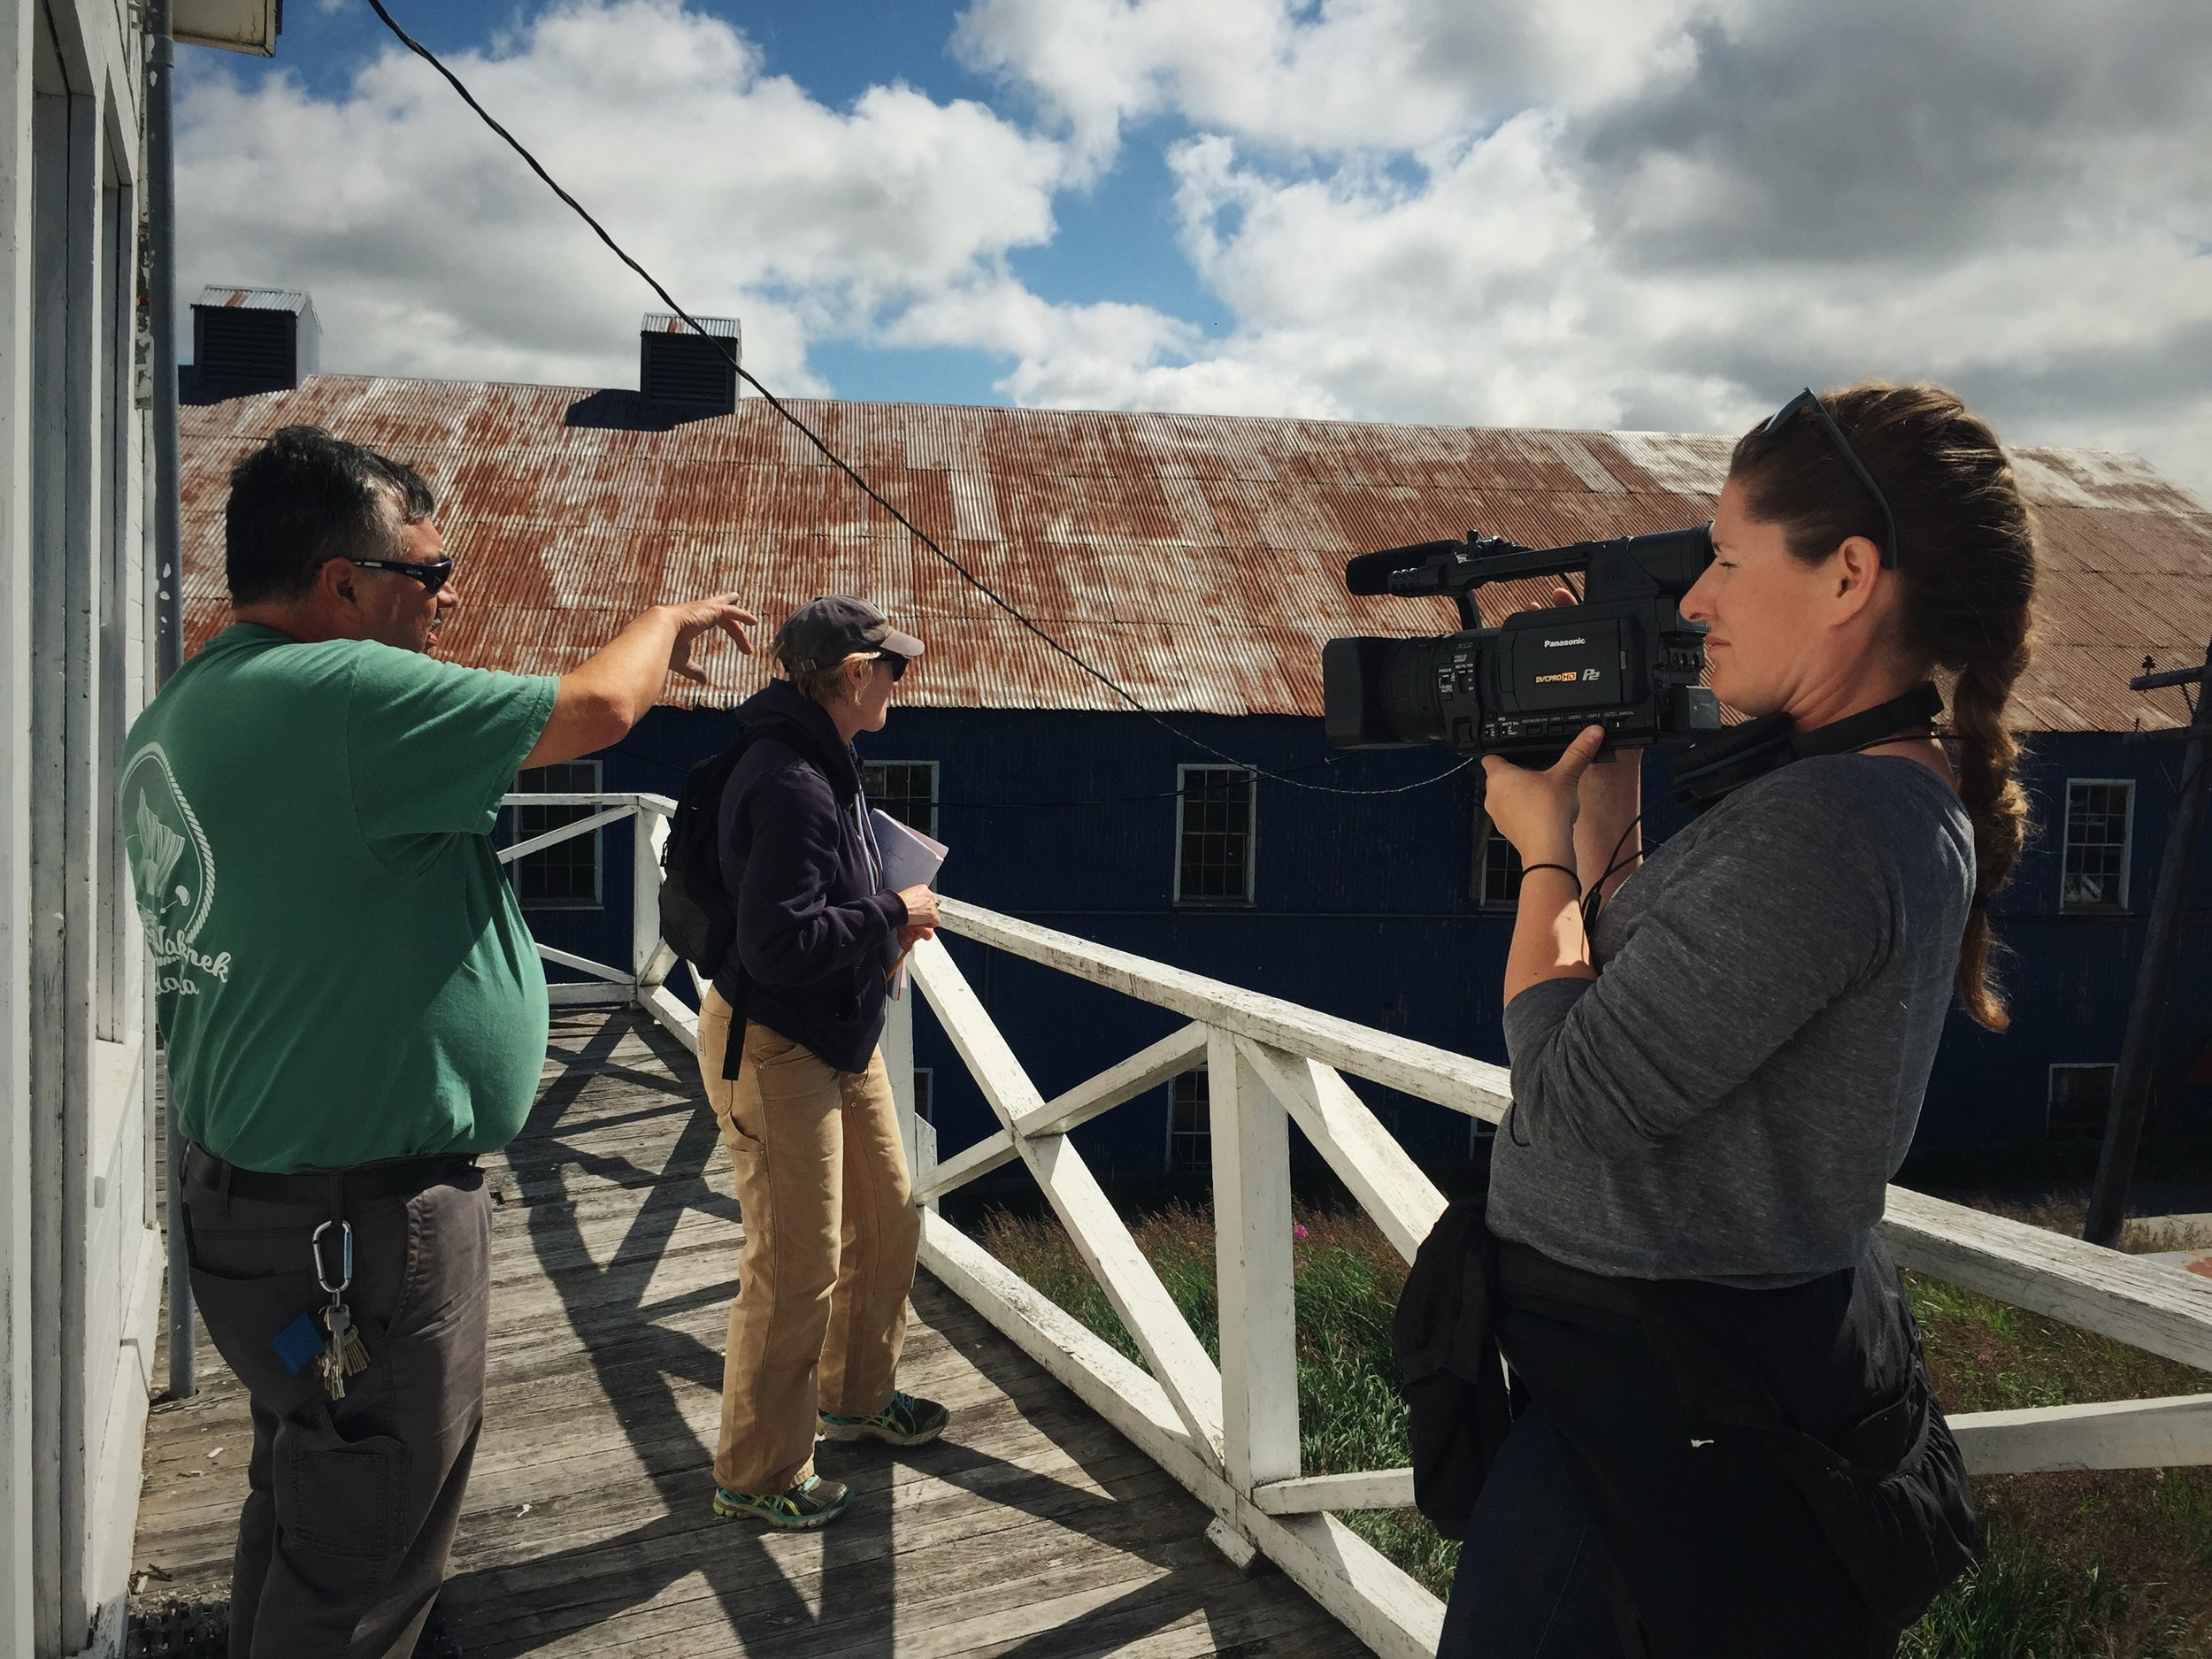 Filming onsite at the NN Cannery in South Naknek, Alaska.